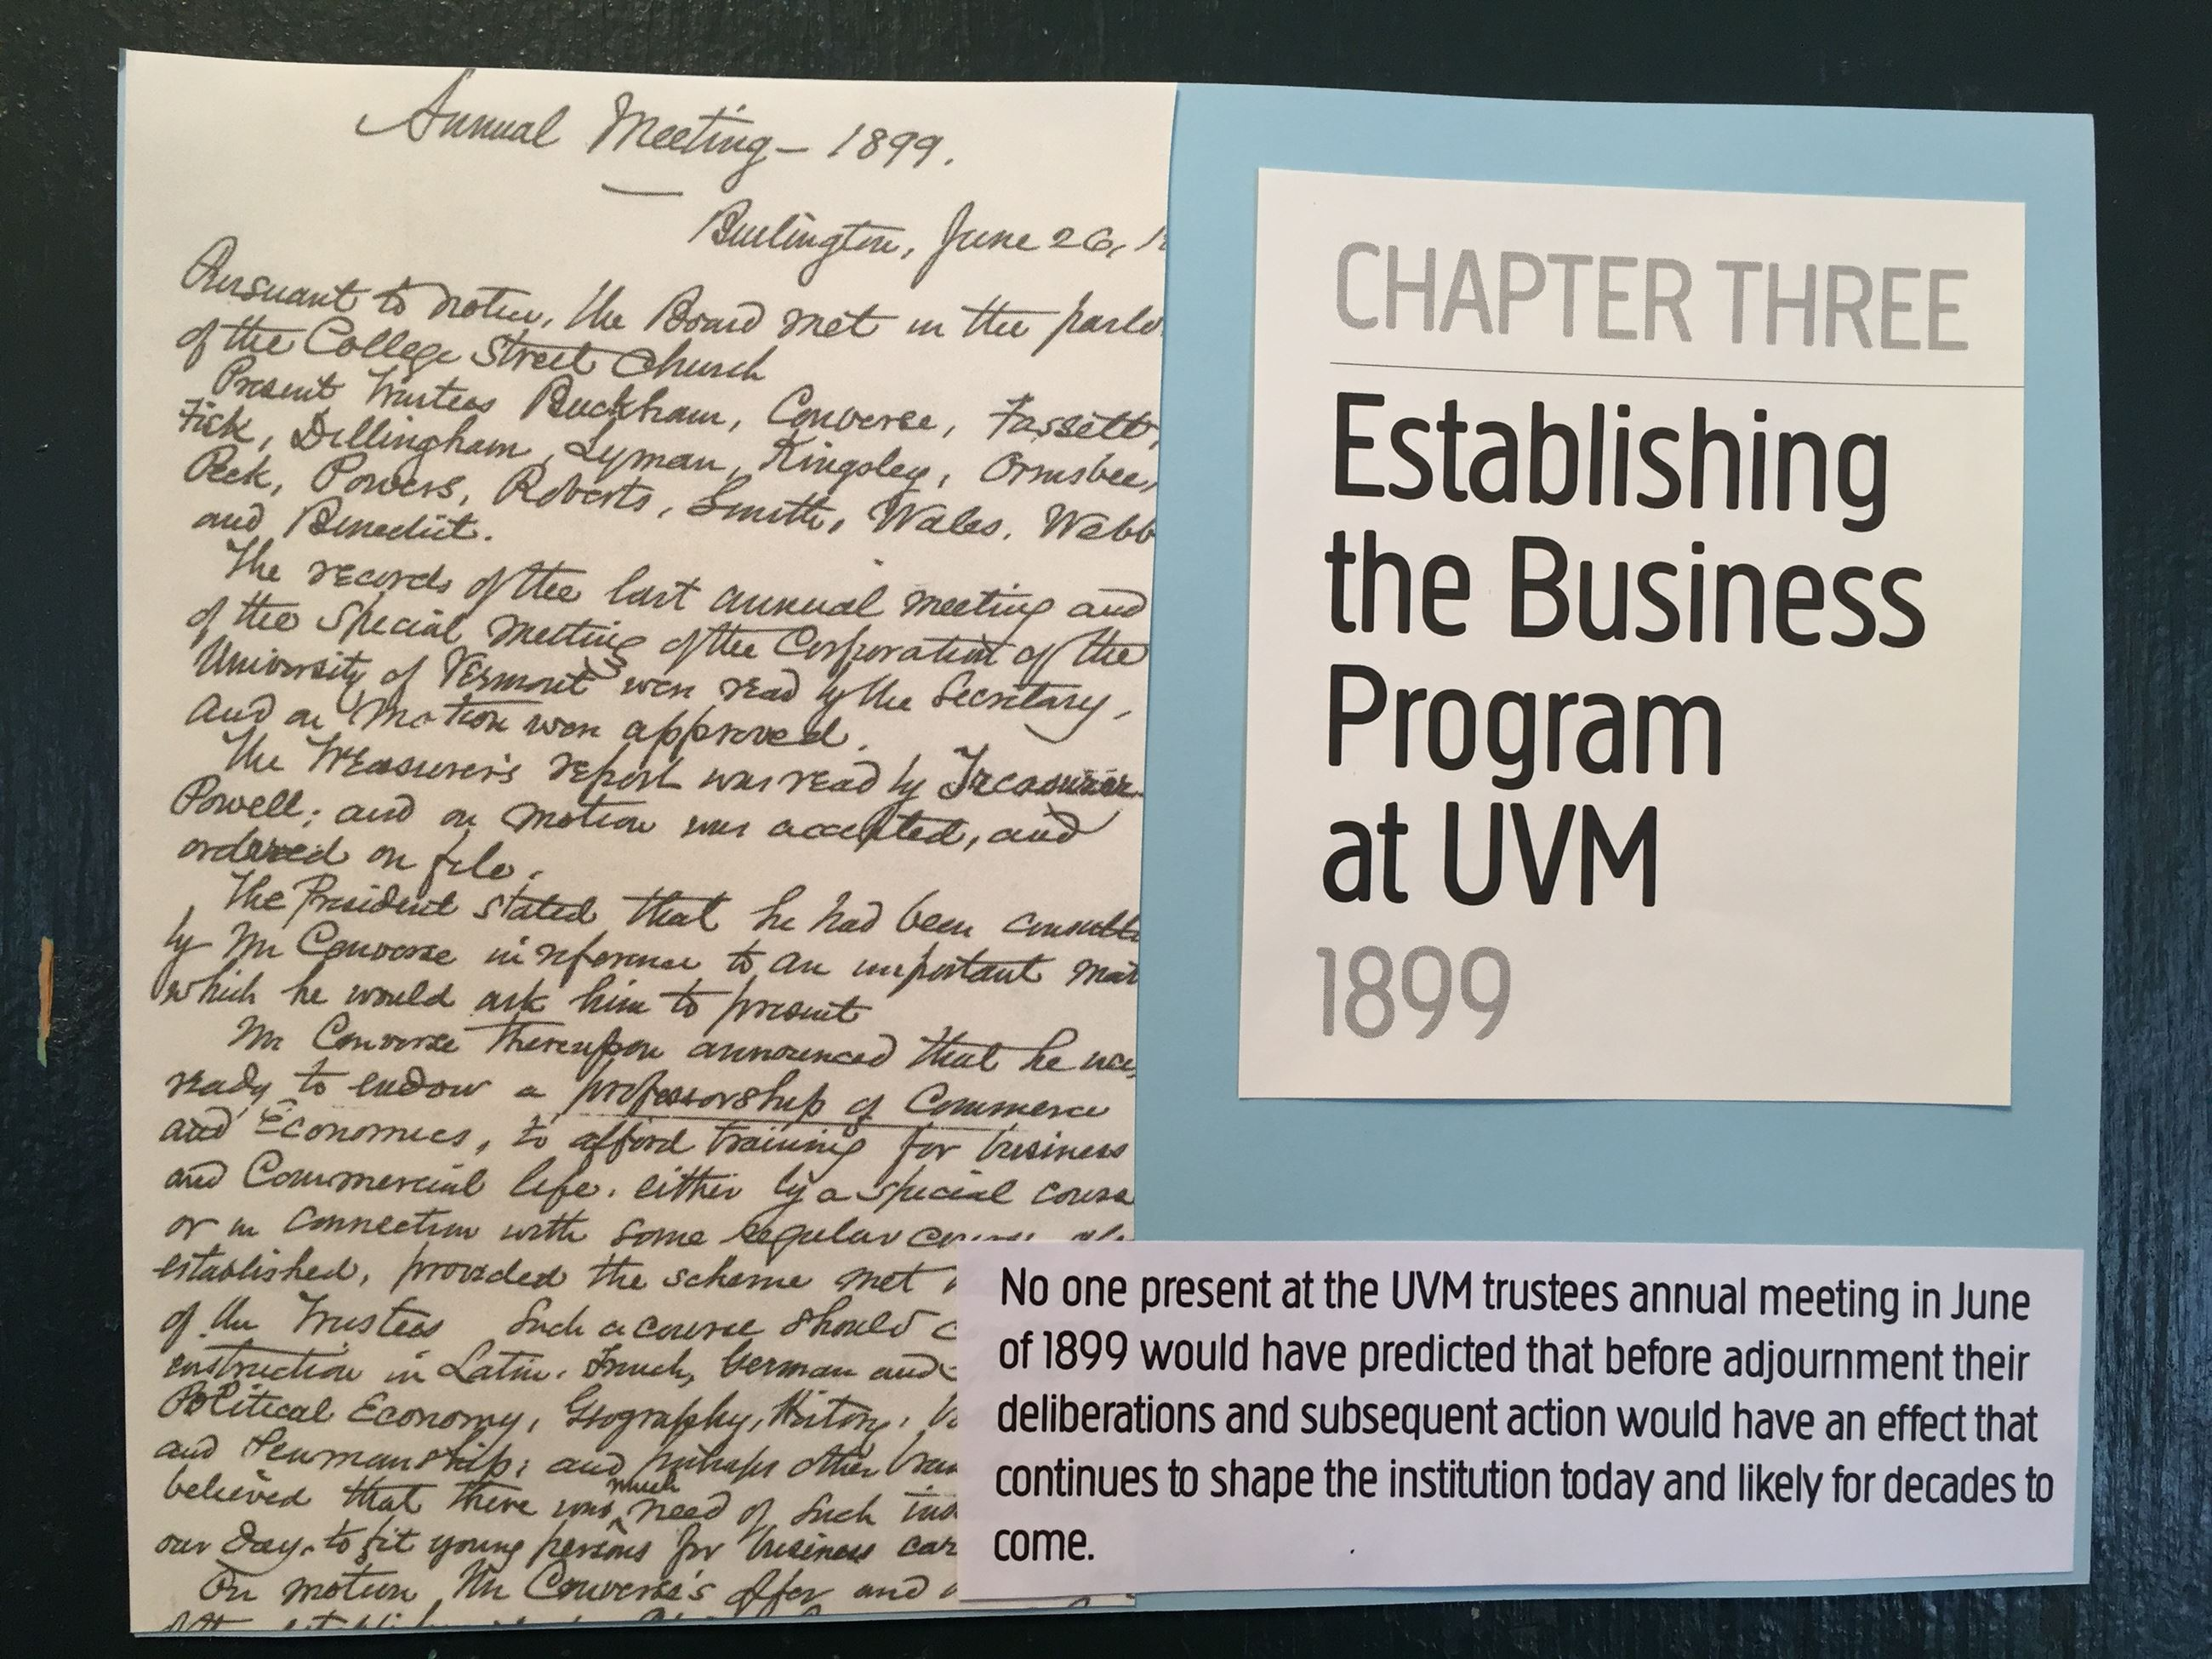 Establishing the Business Program at UVM